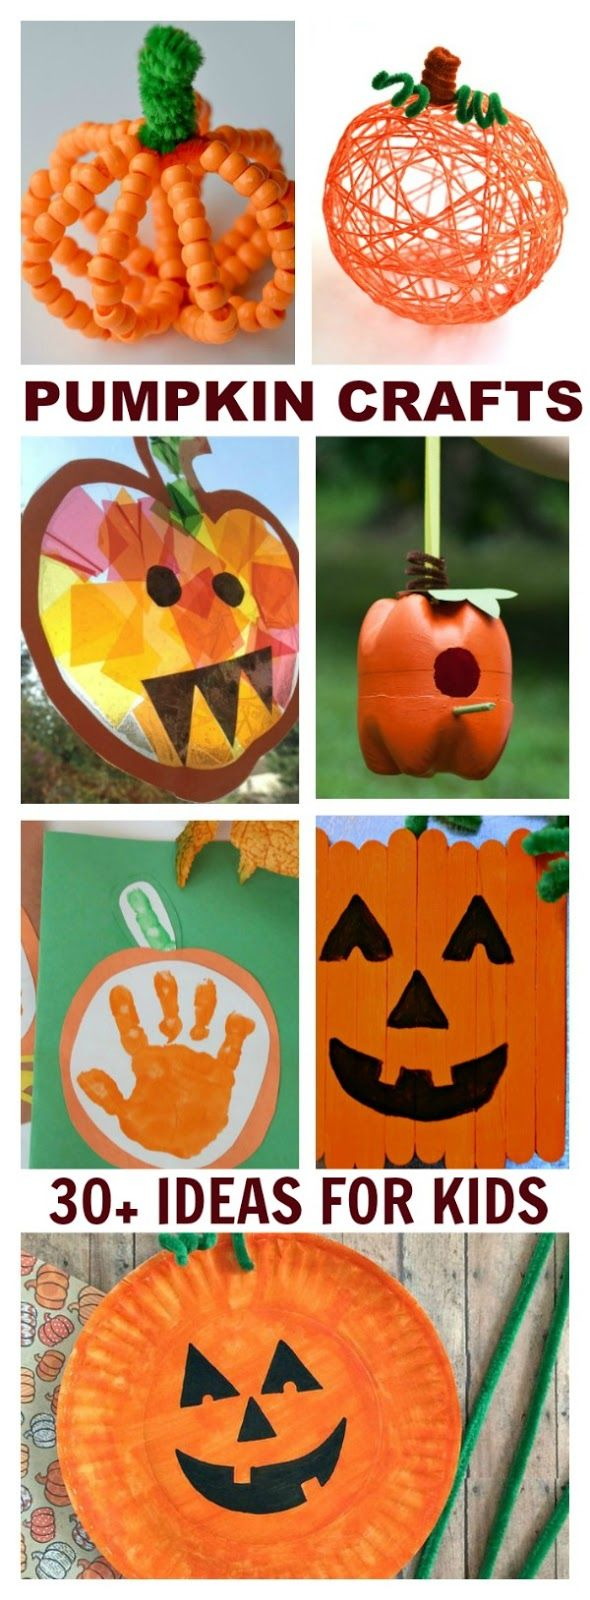 halloween craft ideas kids best 25 october crafts ideas only on pinterest october - Preschool Halloween Crafts Ideas